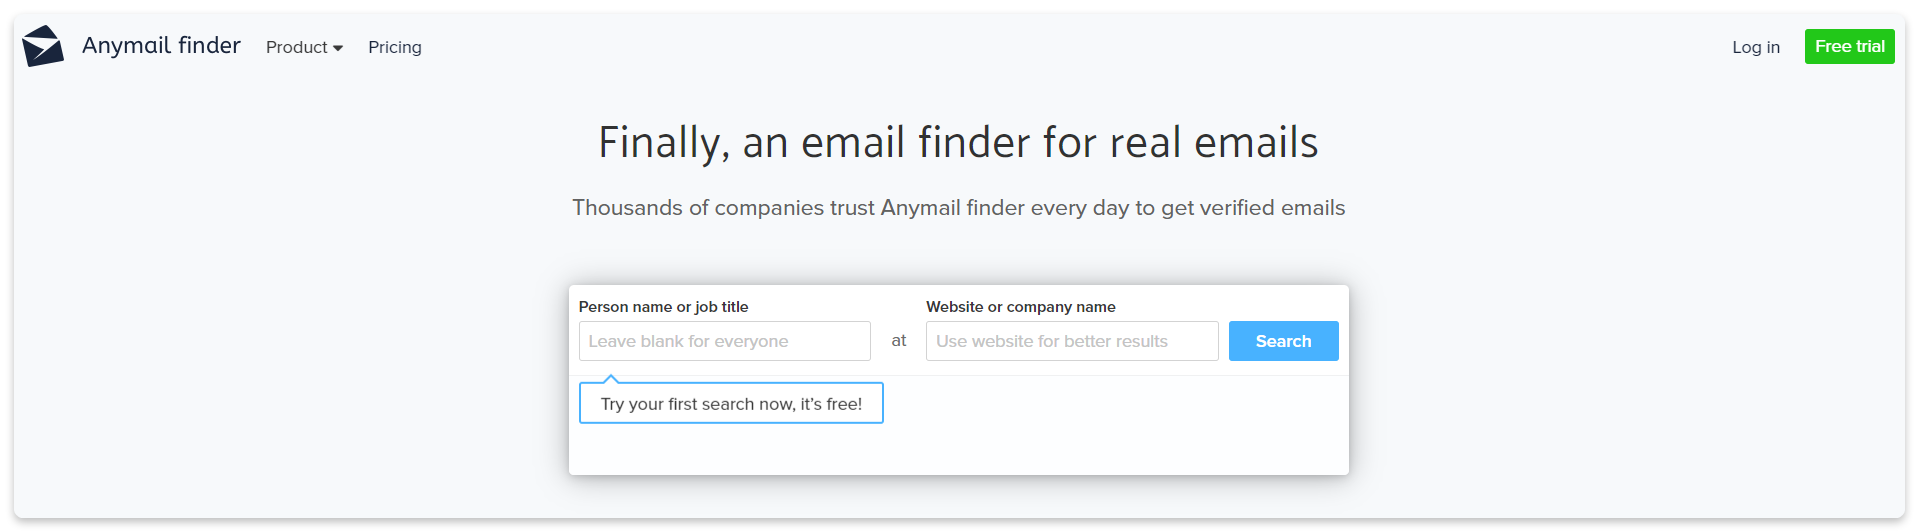 anymail finder